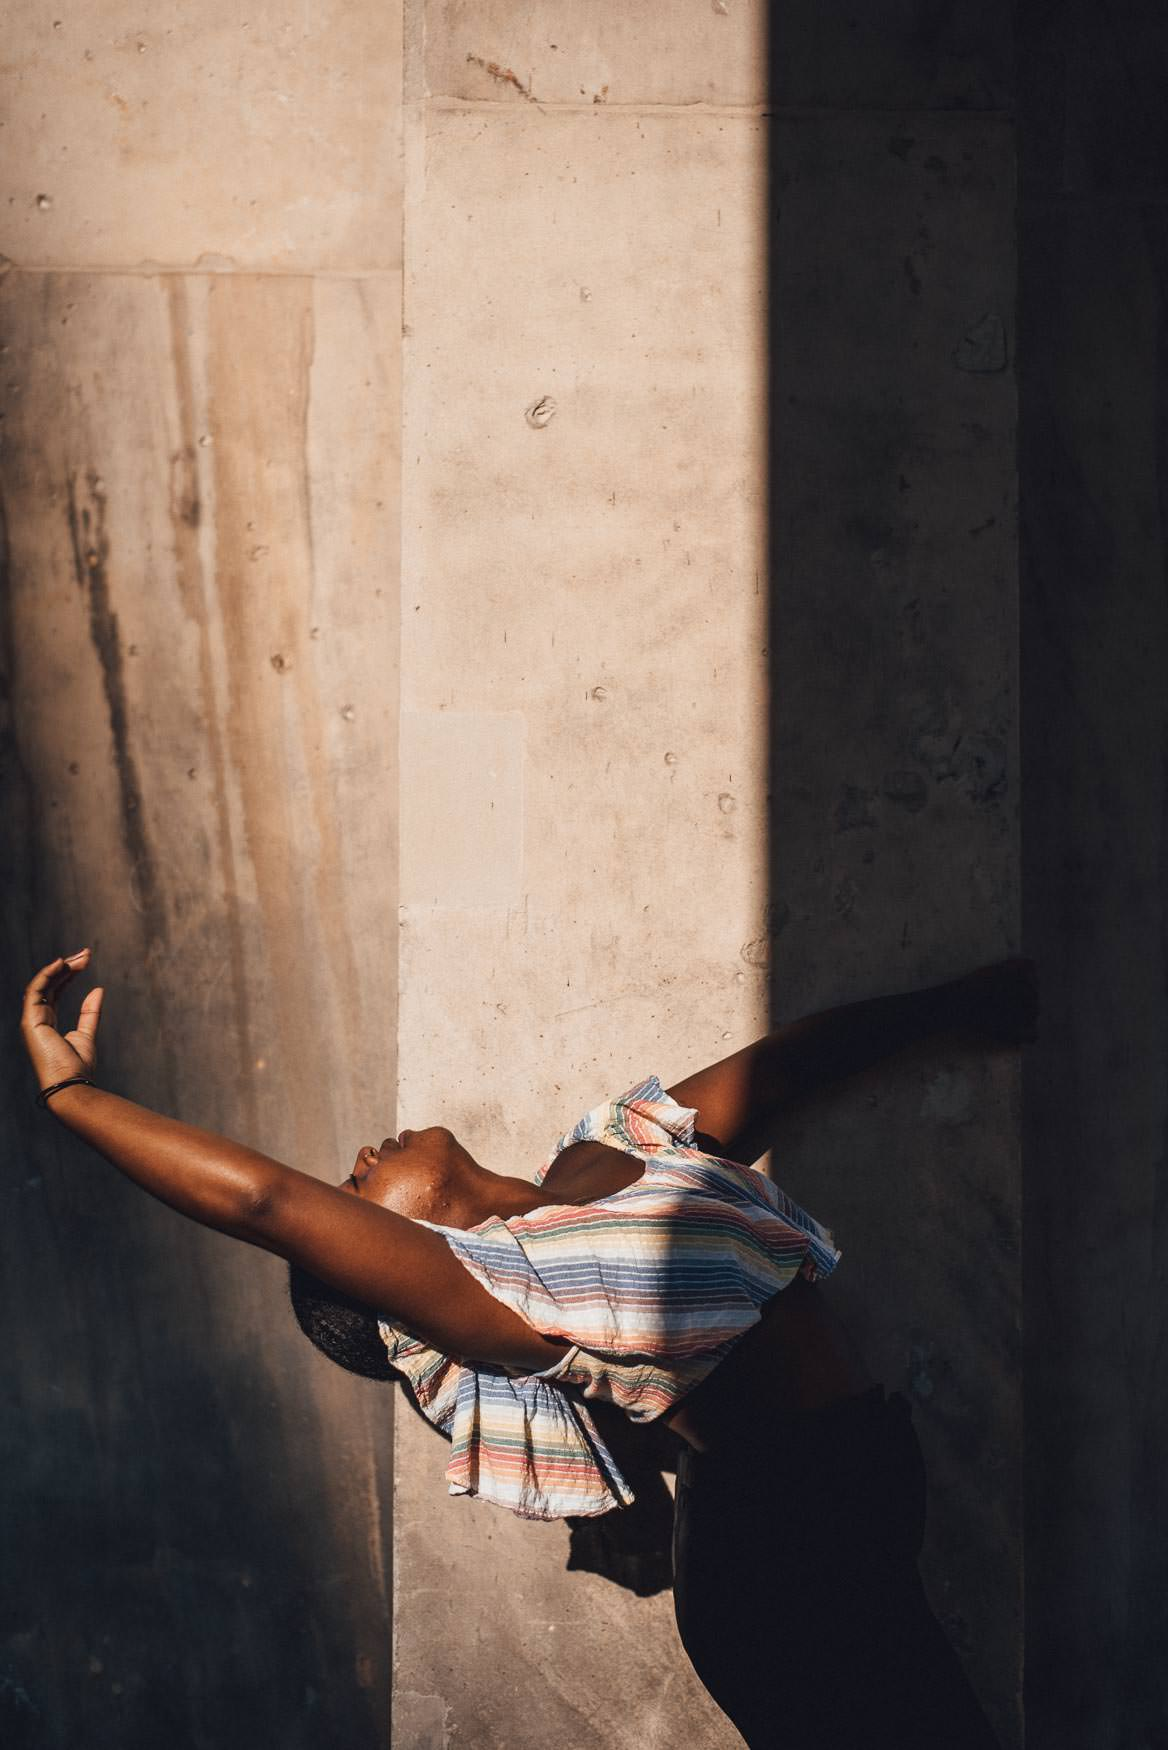 Dancer in light and shadow. Creative dance photography